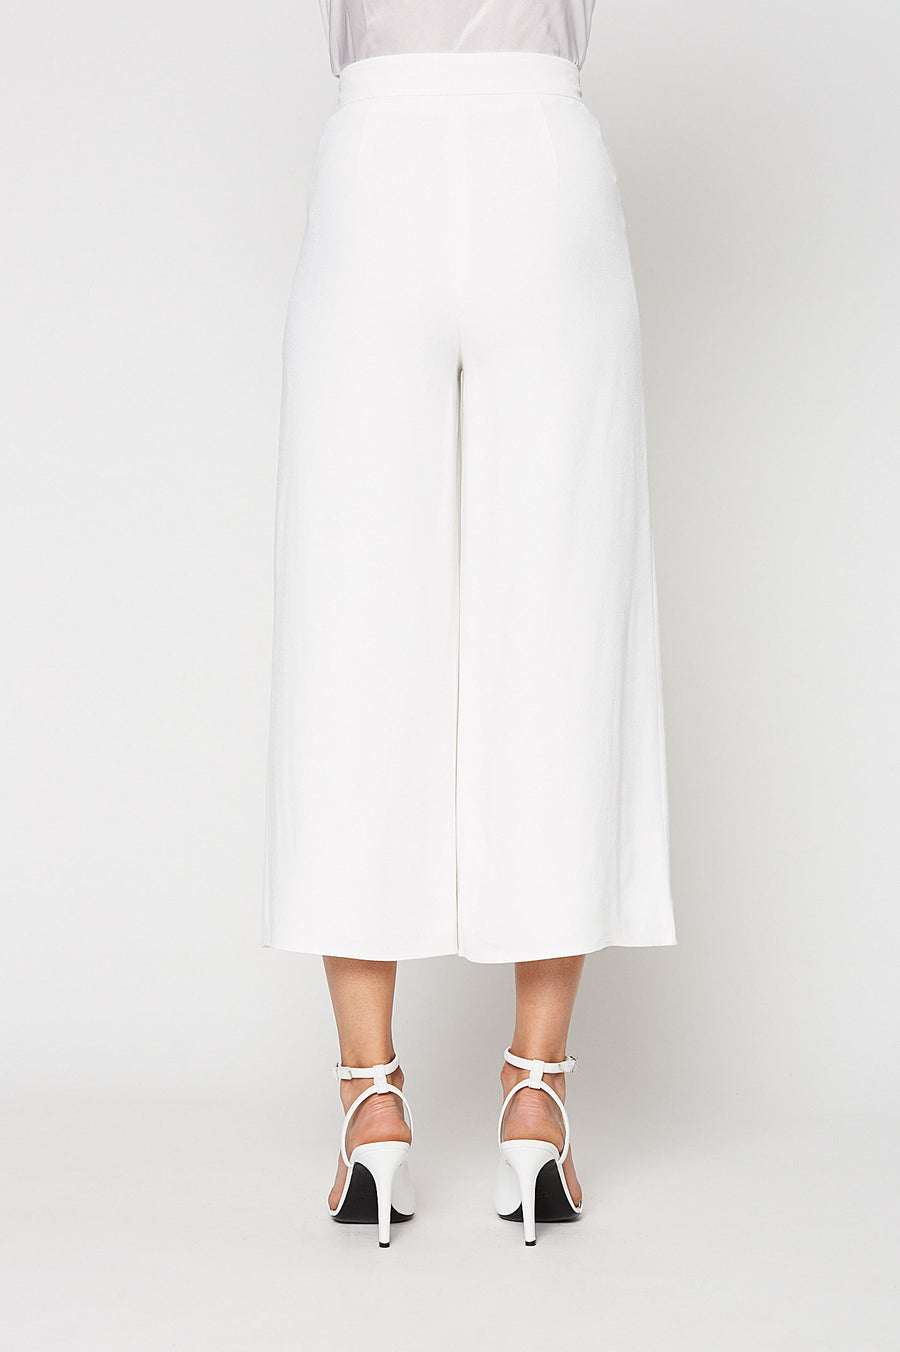 CREPE CULOTTE, wide leg, high waist, cropped above ankle, WHITE color